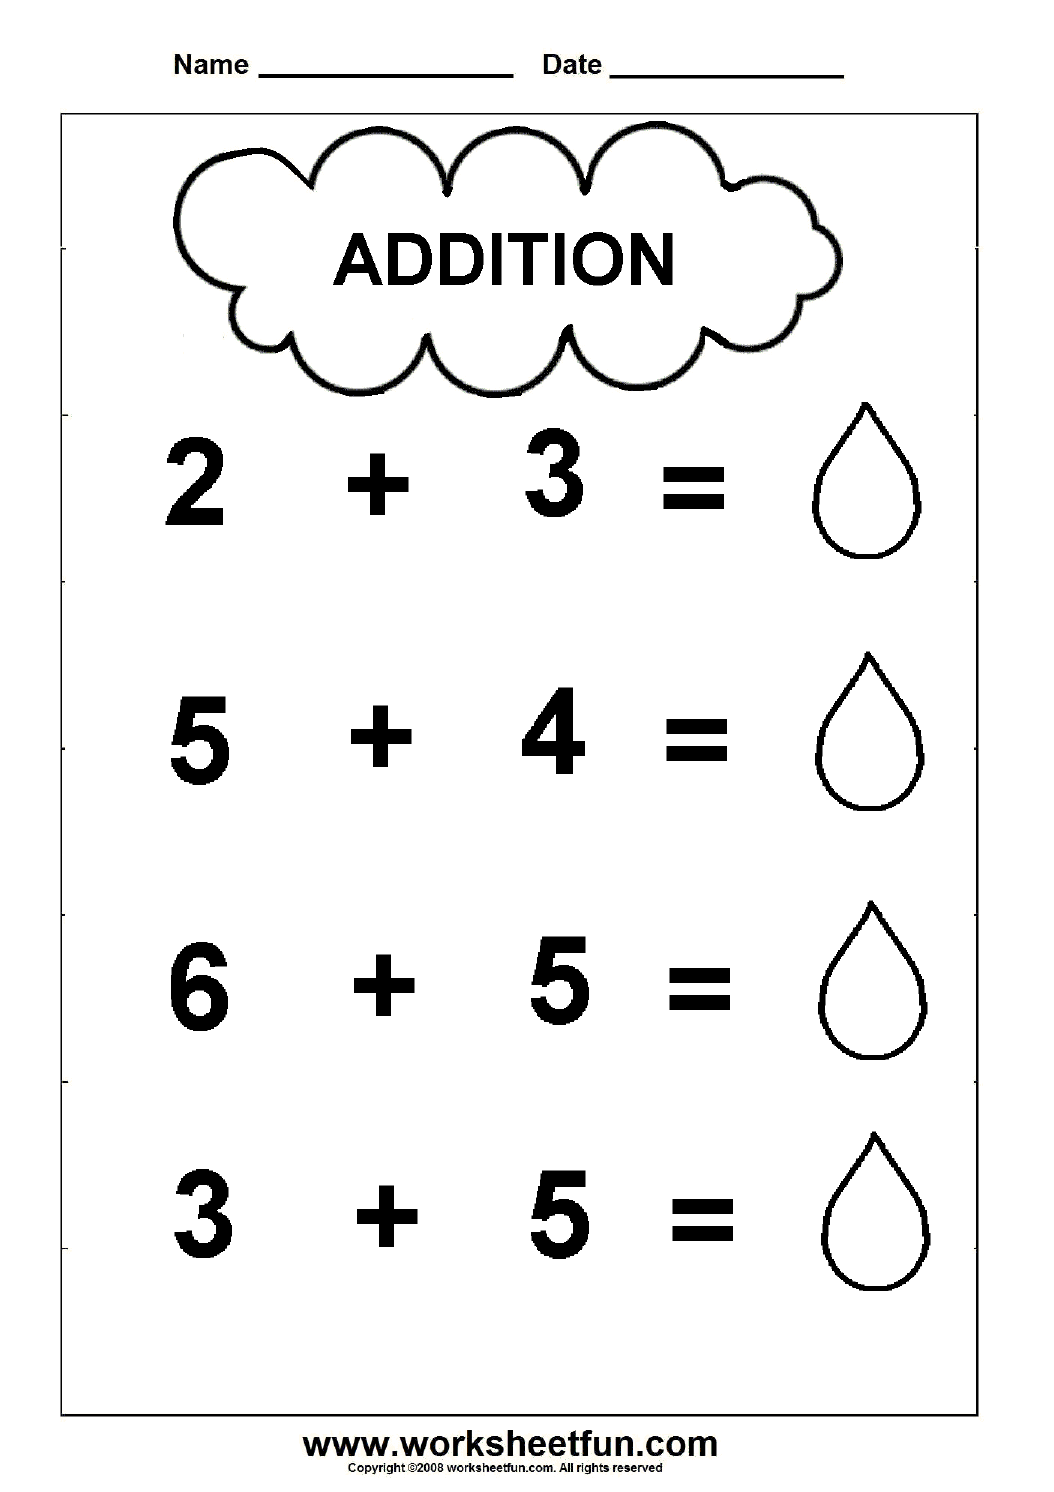 Addition 2 Worksheets Kindergarten Worksheets – Kindergarten Math Addition Worksheets